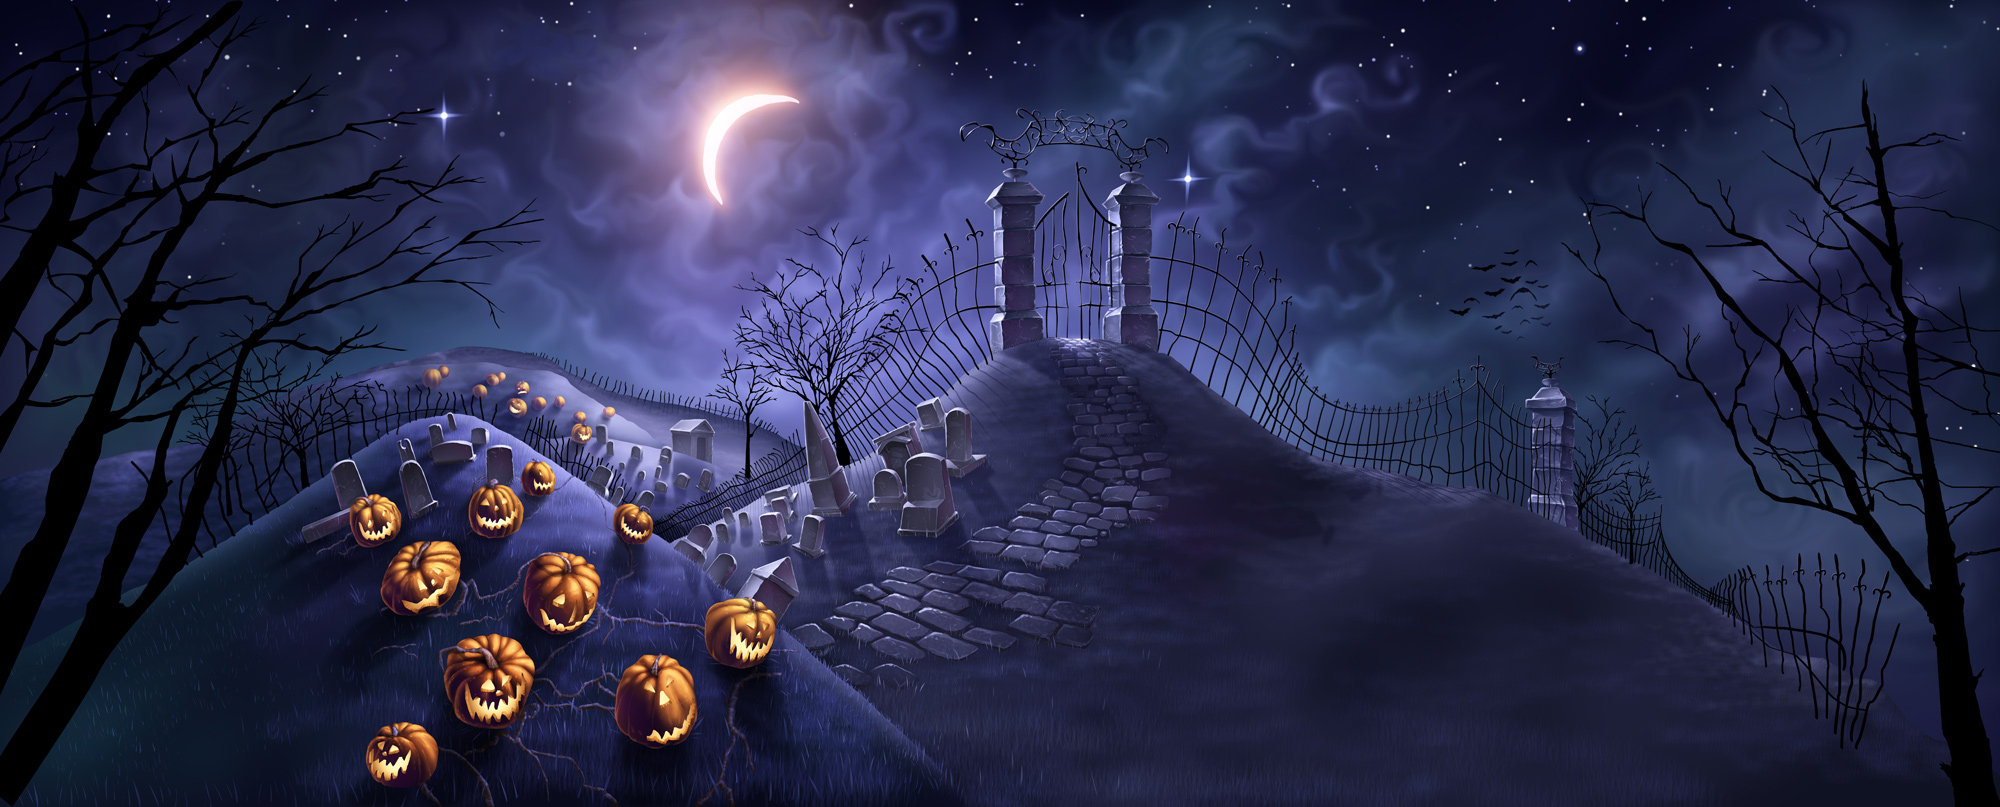 Halloween 2013 Backgrounds Wallpapers 2000x807